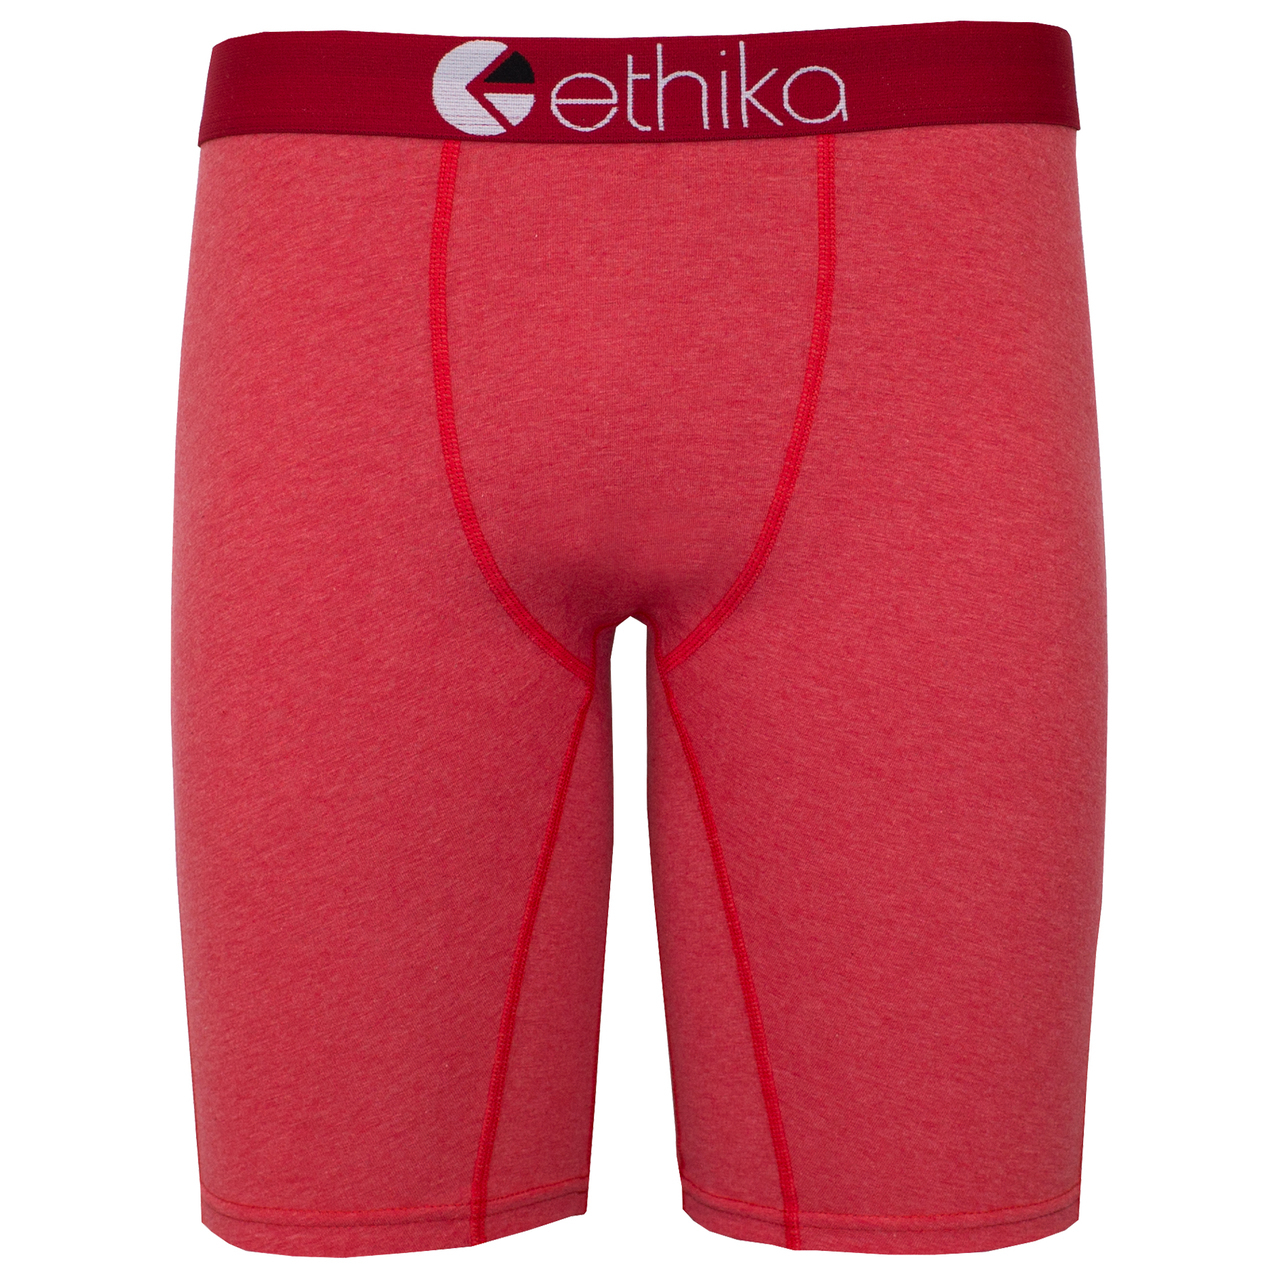 Ethika Heather Cherry Red heather